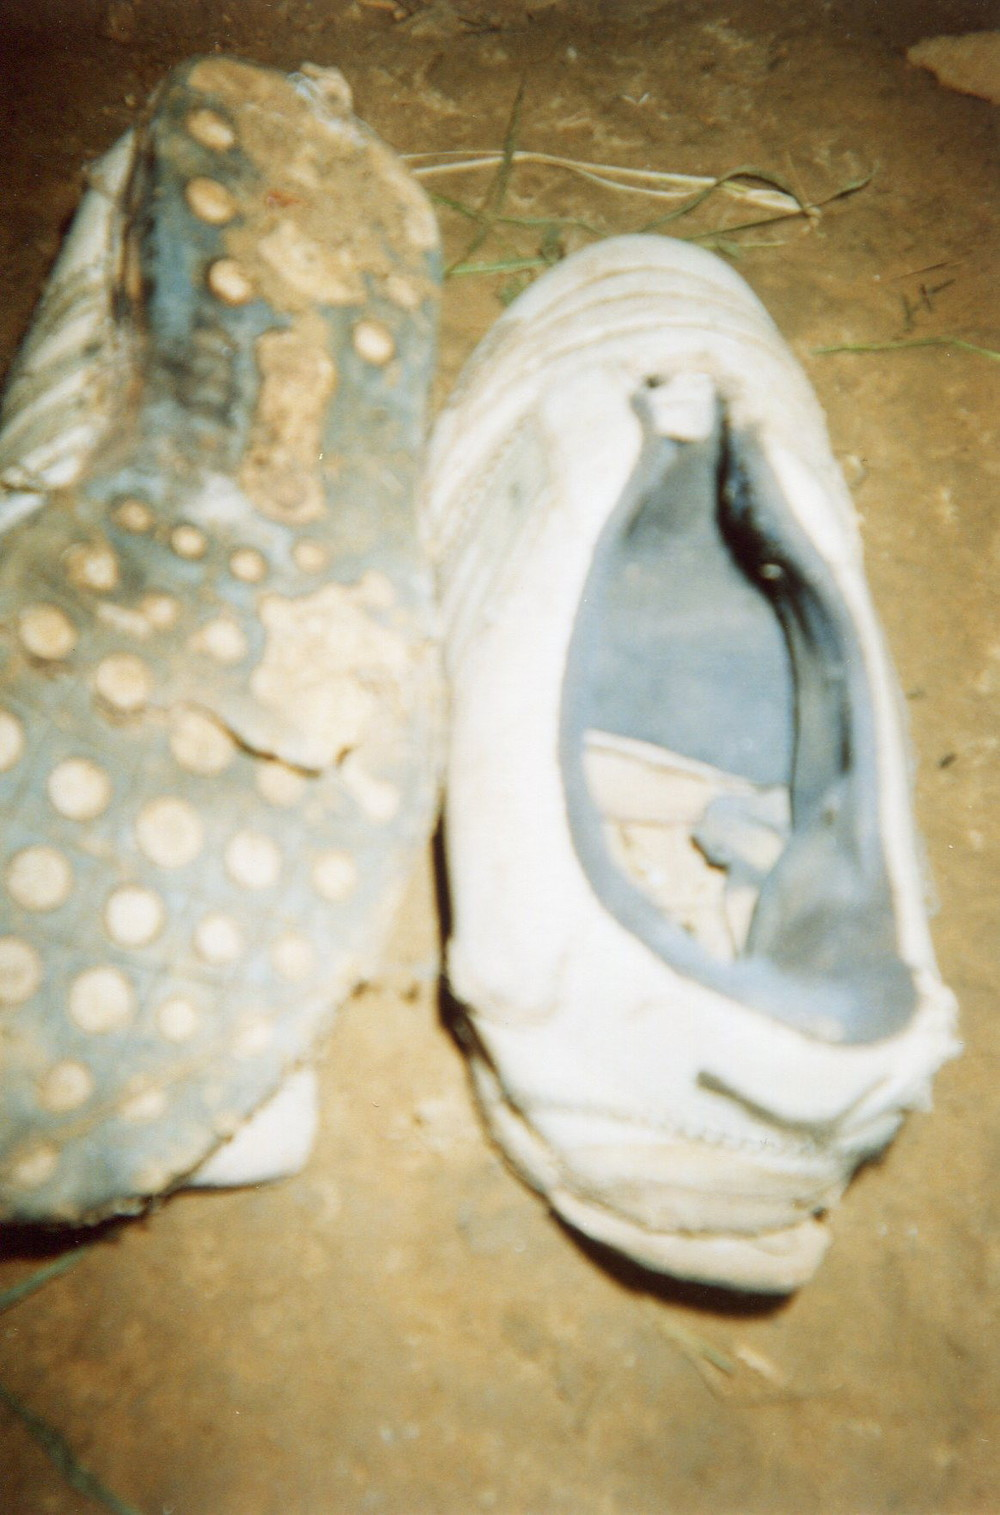 The shoes of a soldier are severely punctured.